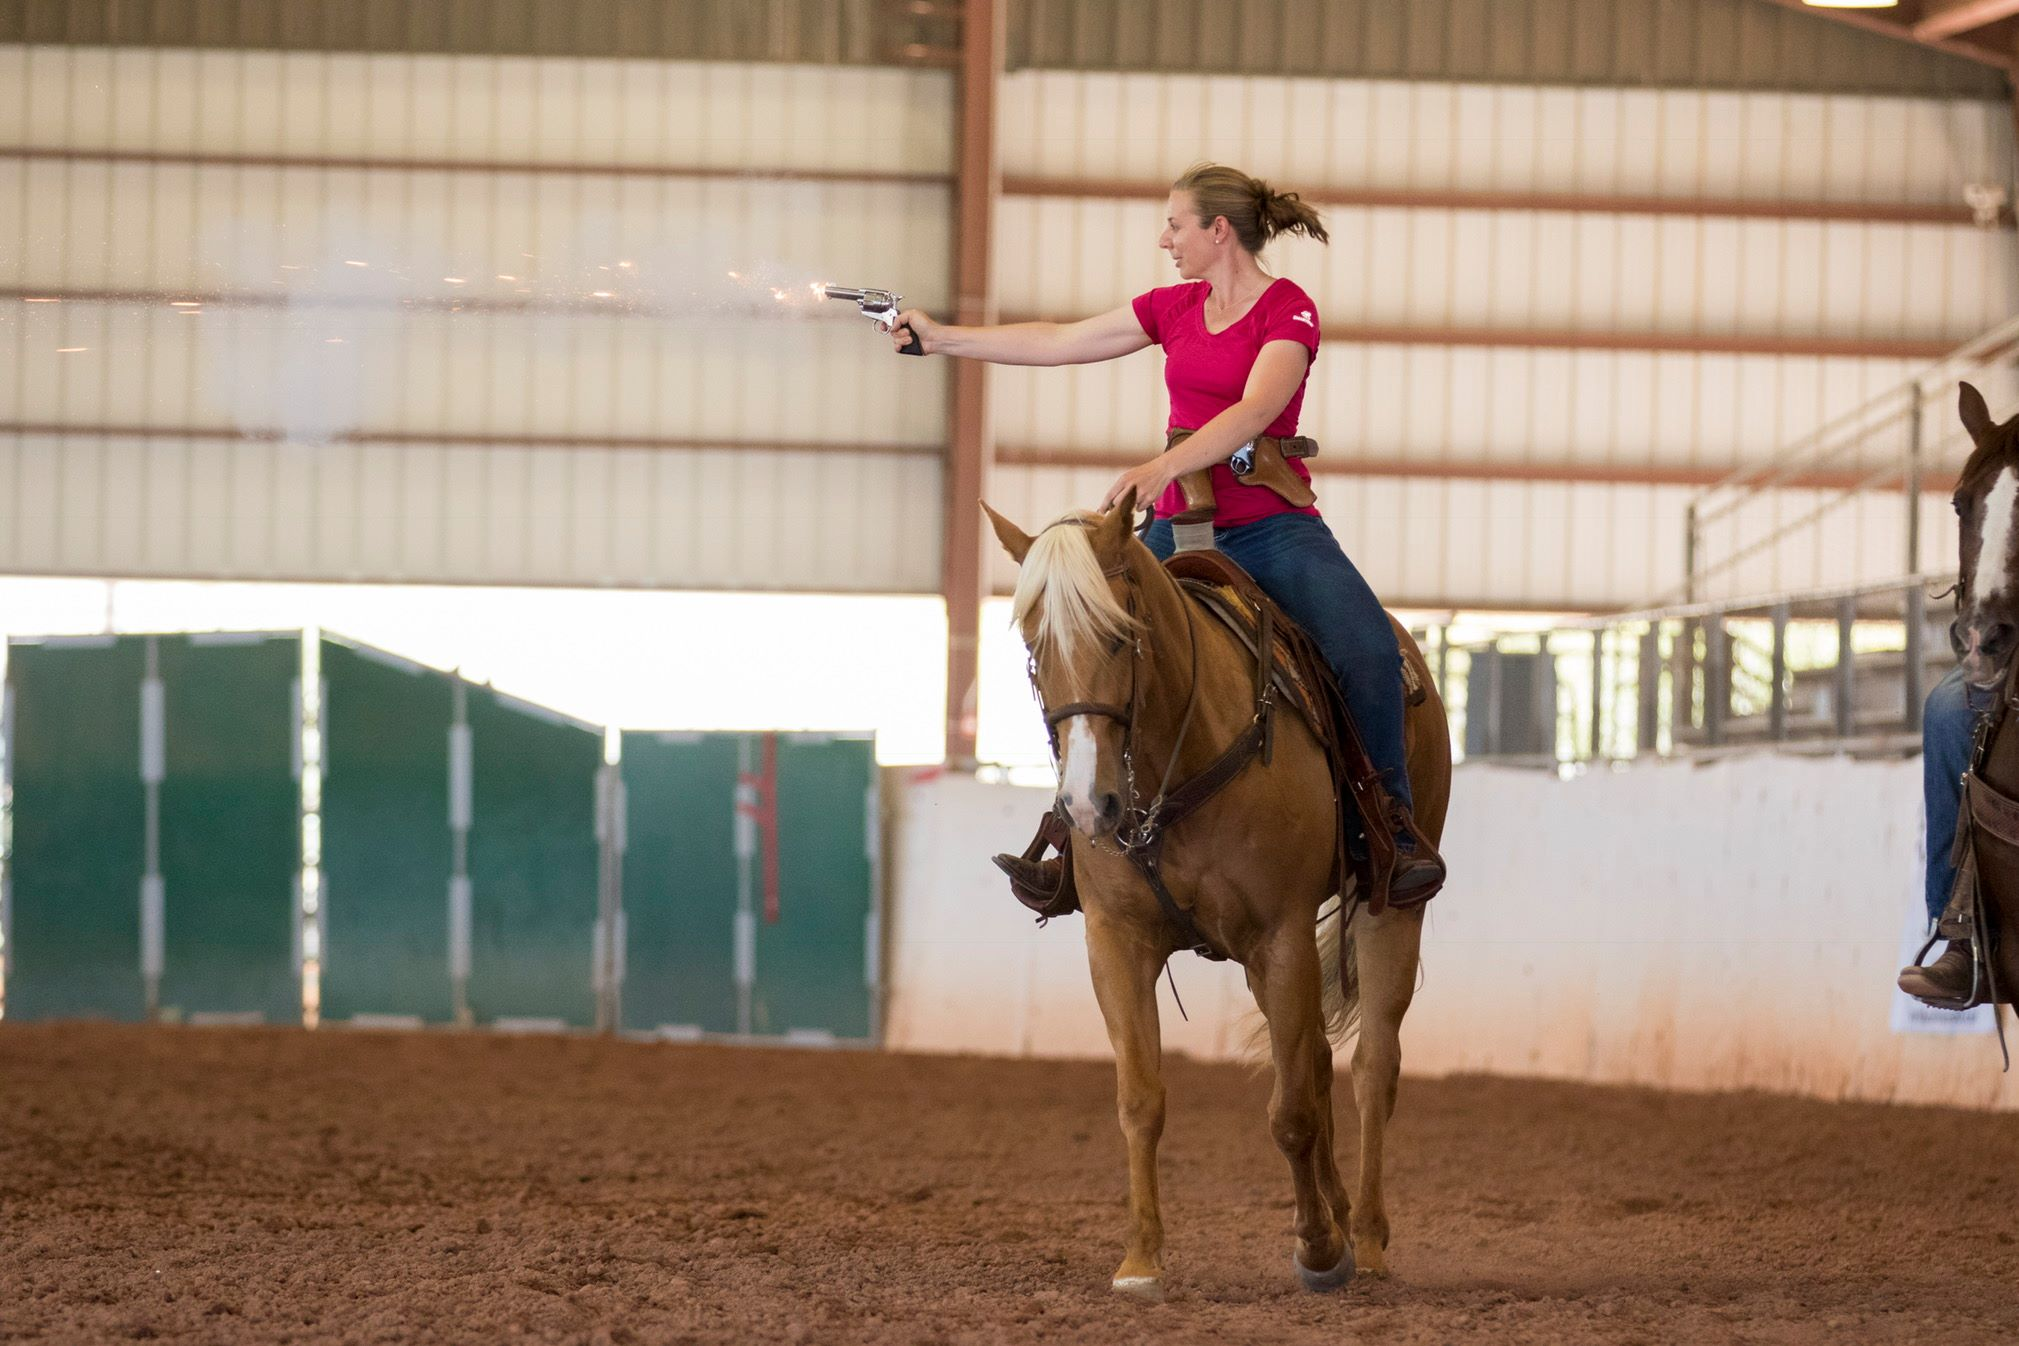 Katie Navarra participates in the mounted shooting demo at the 2017 AHP conference. (Photo by Vanessa Hughes / Lady Photographic)